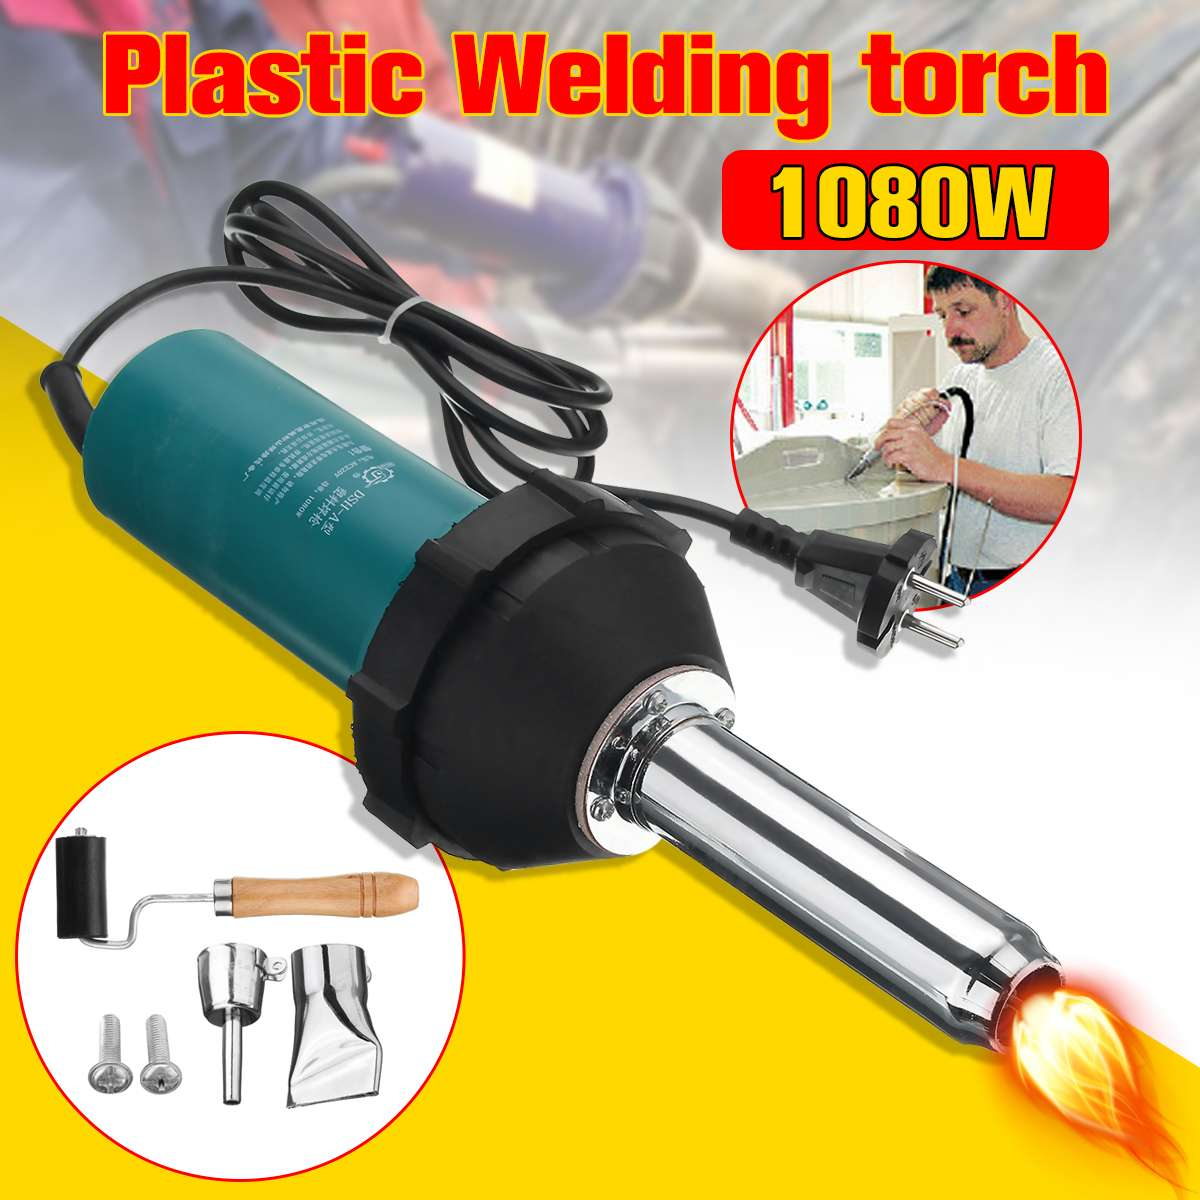 1080W 220V 50Hz Plastic Hot Air Welding Guns with Pencil Tip Nozzle & Flat Tip & Pressure Roller Heat Kit for Welder Machine1080W 220V 50Hz Plastic Hot Air Welding Guns with Pencil Tip Nozzle & Flat Tip & Pressure Roller Heat Kit for Welder Machine